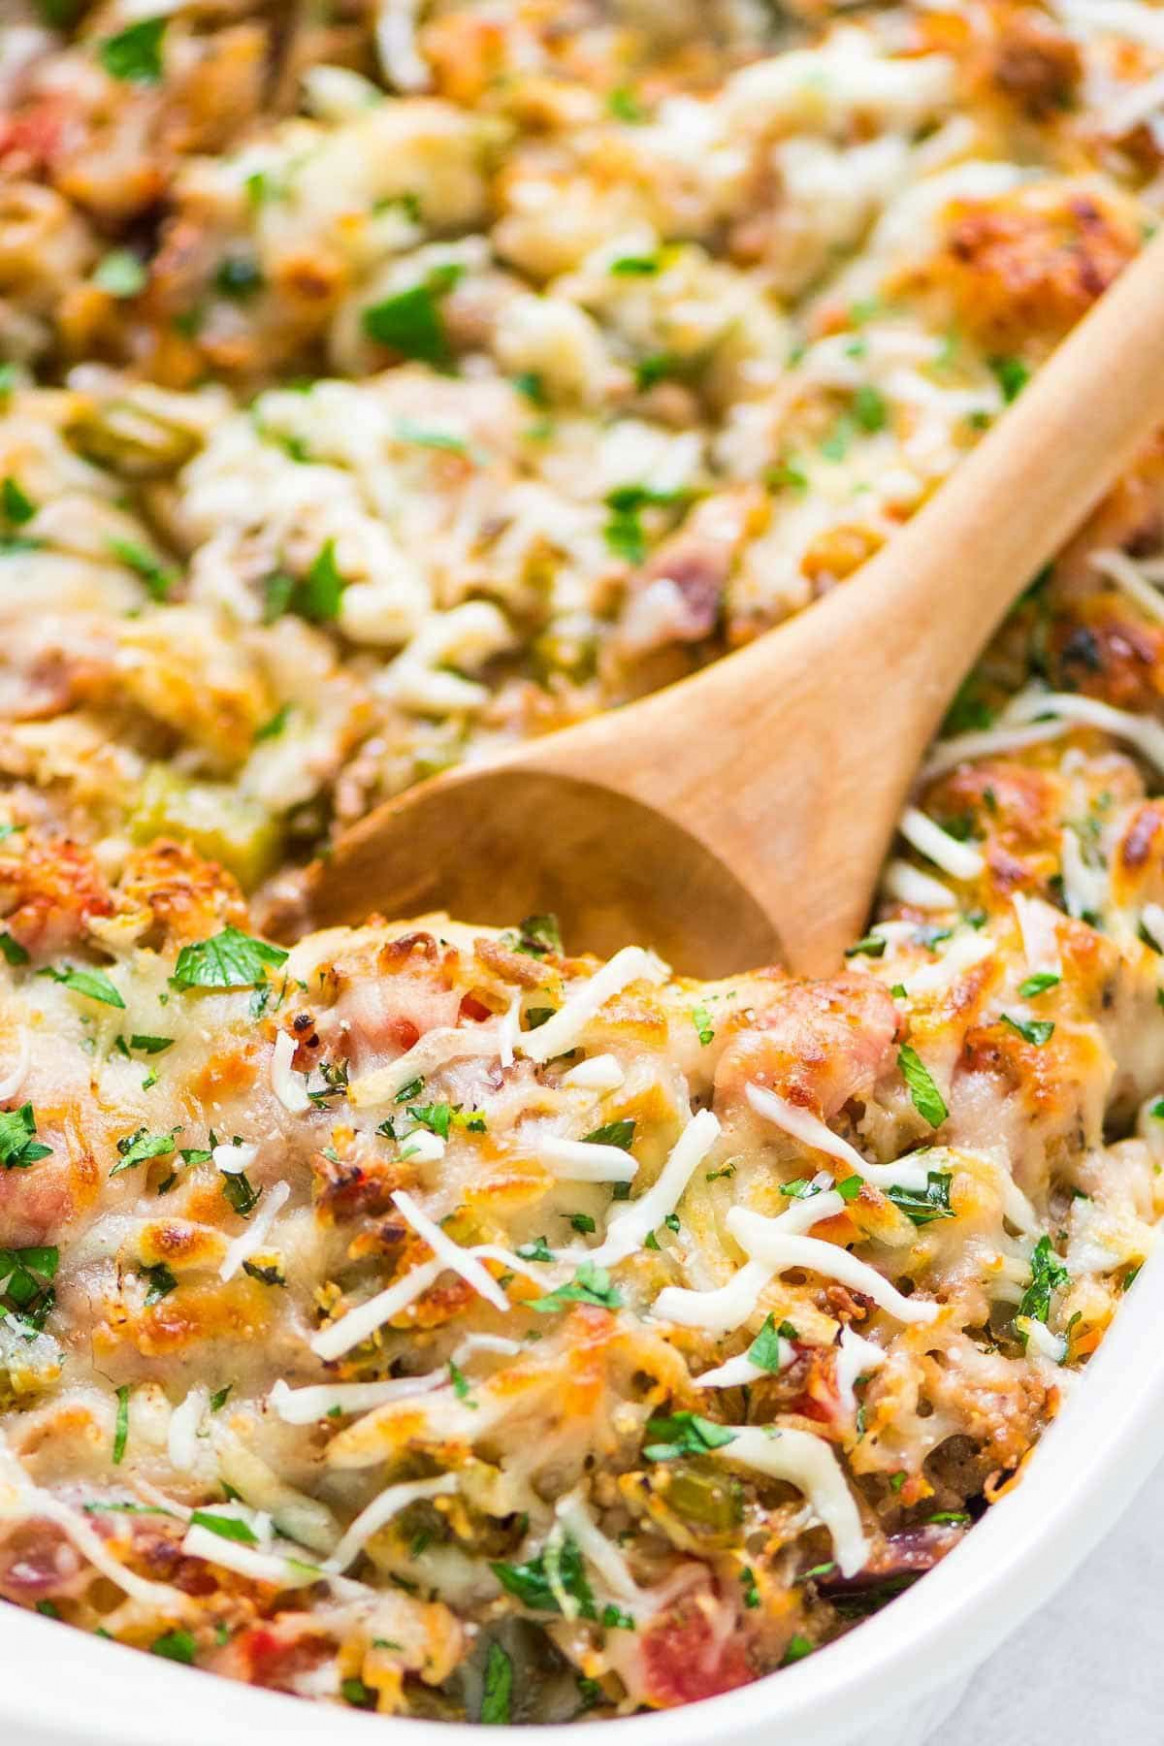 12 Easy Squash Casserole Recipes - Best Casseroles With ..